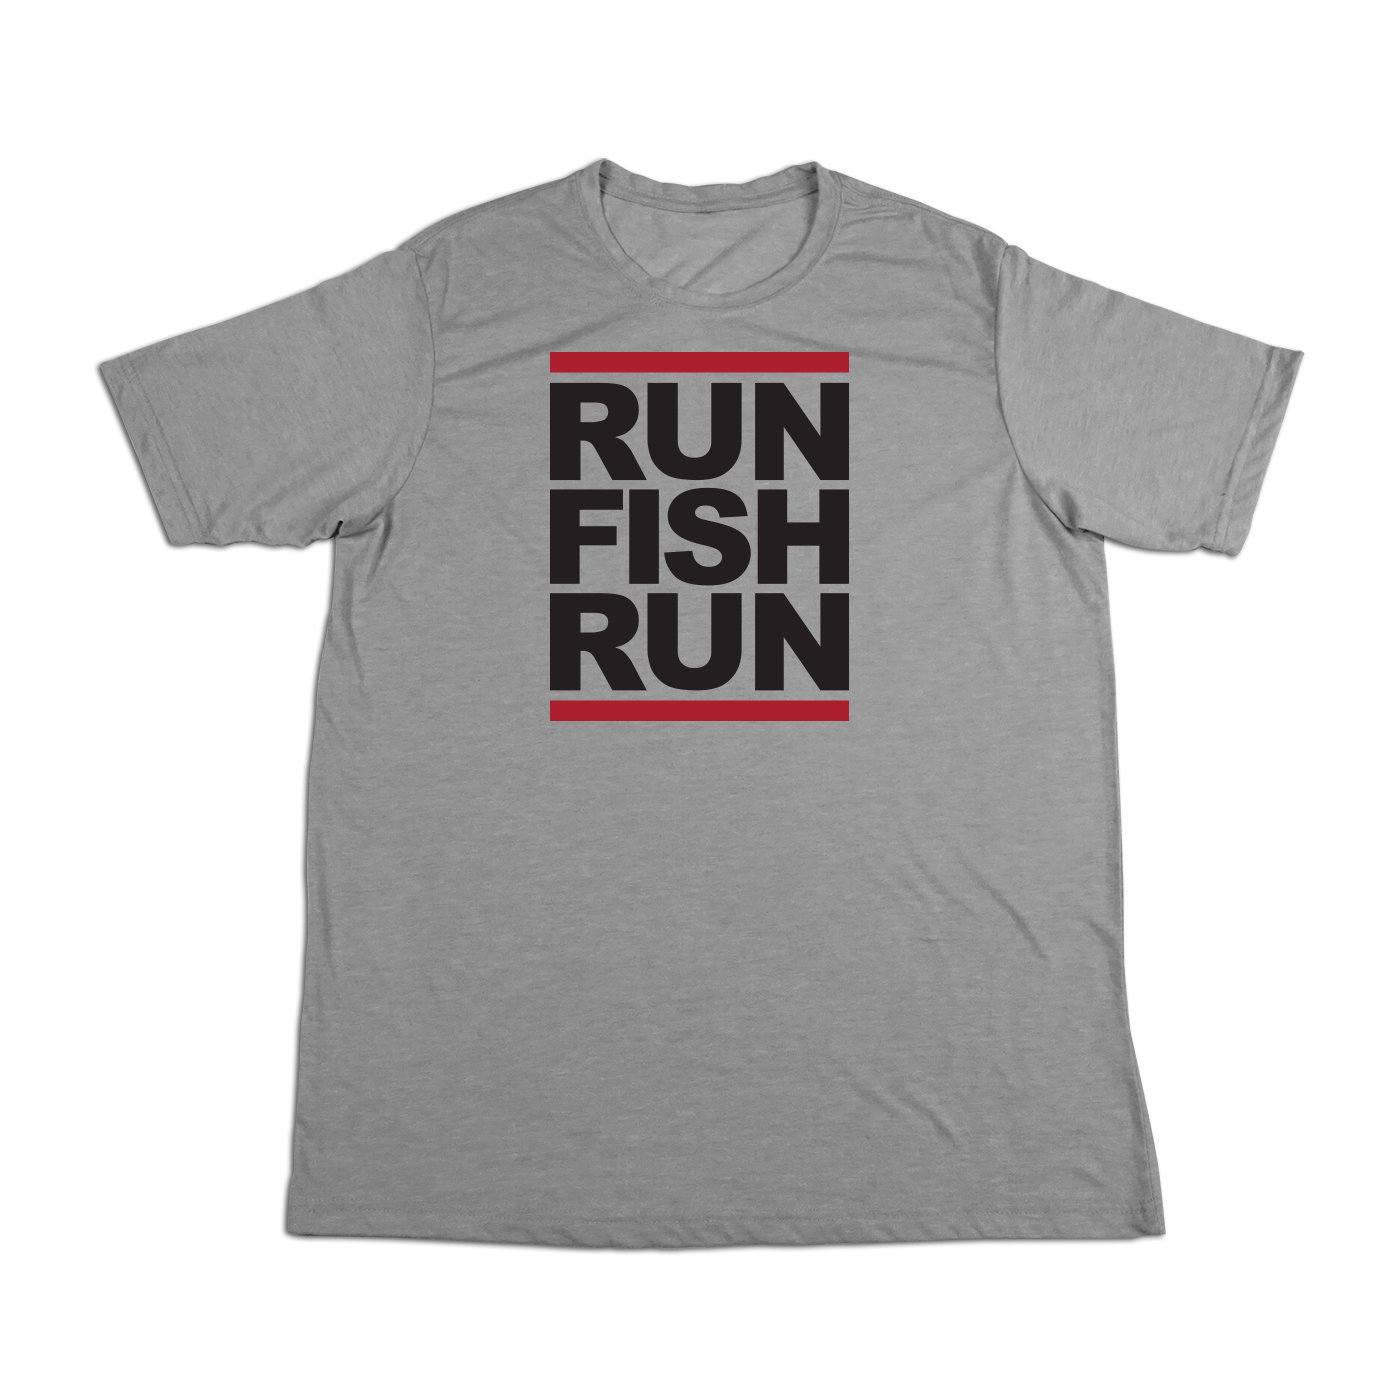 #RUNFISHRUN Soft Short Sleeve Shirt - Black - Hat Mount for GoPro